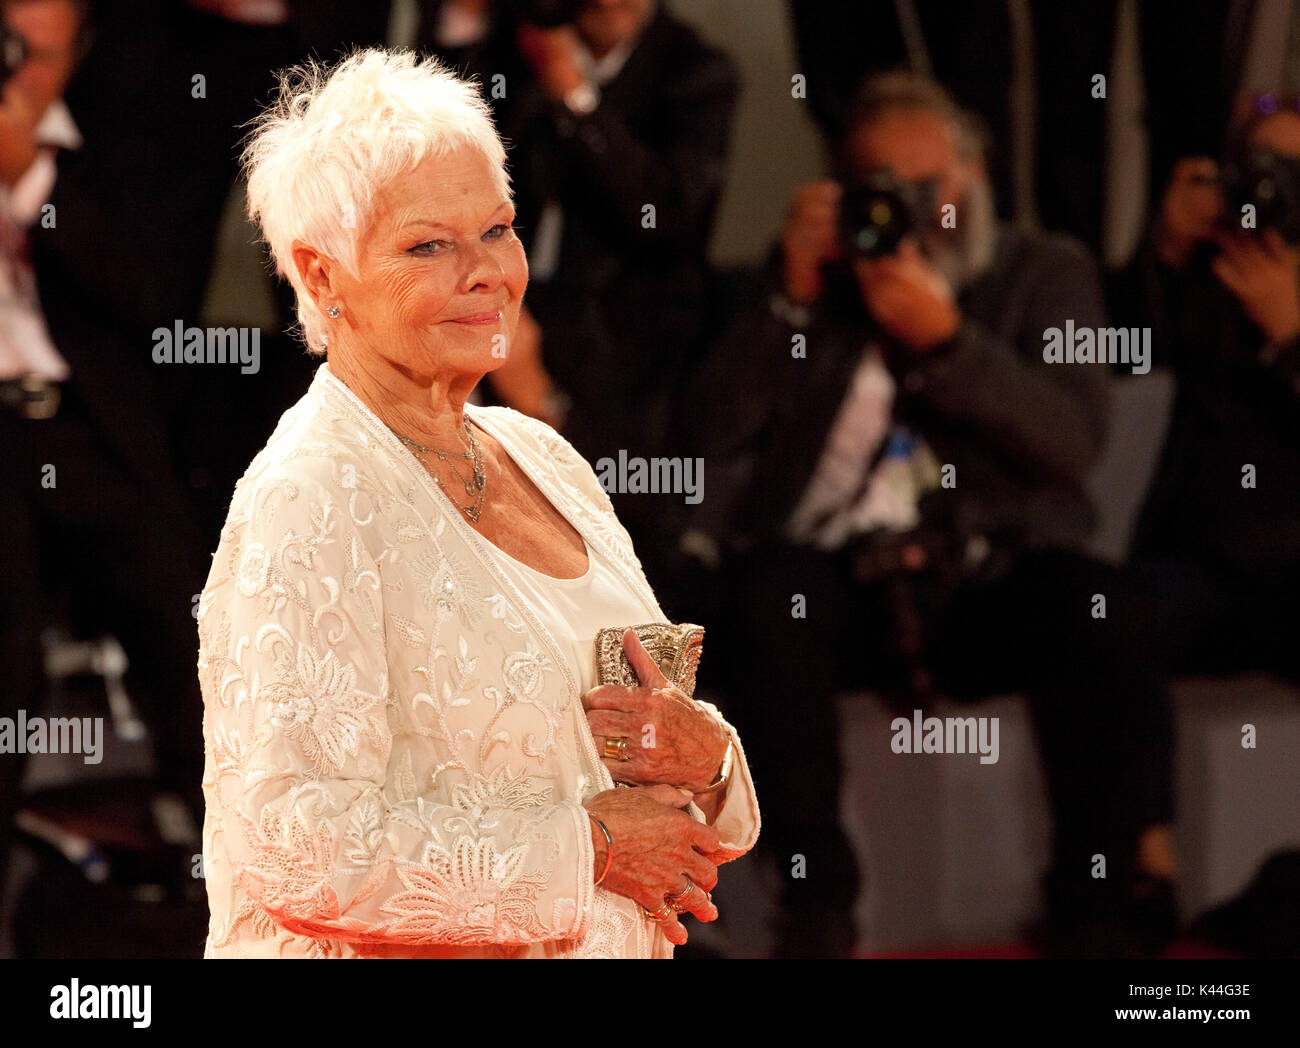 Judi Dench at the premiere of the film Victoria & Abdul at the 74th Venice Film Festival, Sala Grande on Sunday 3 September 2017, Venice Lido, Italy. - Stock Image